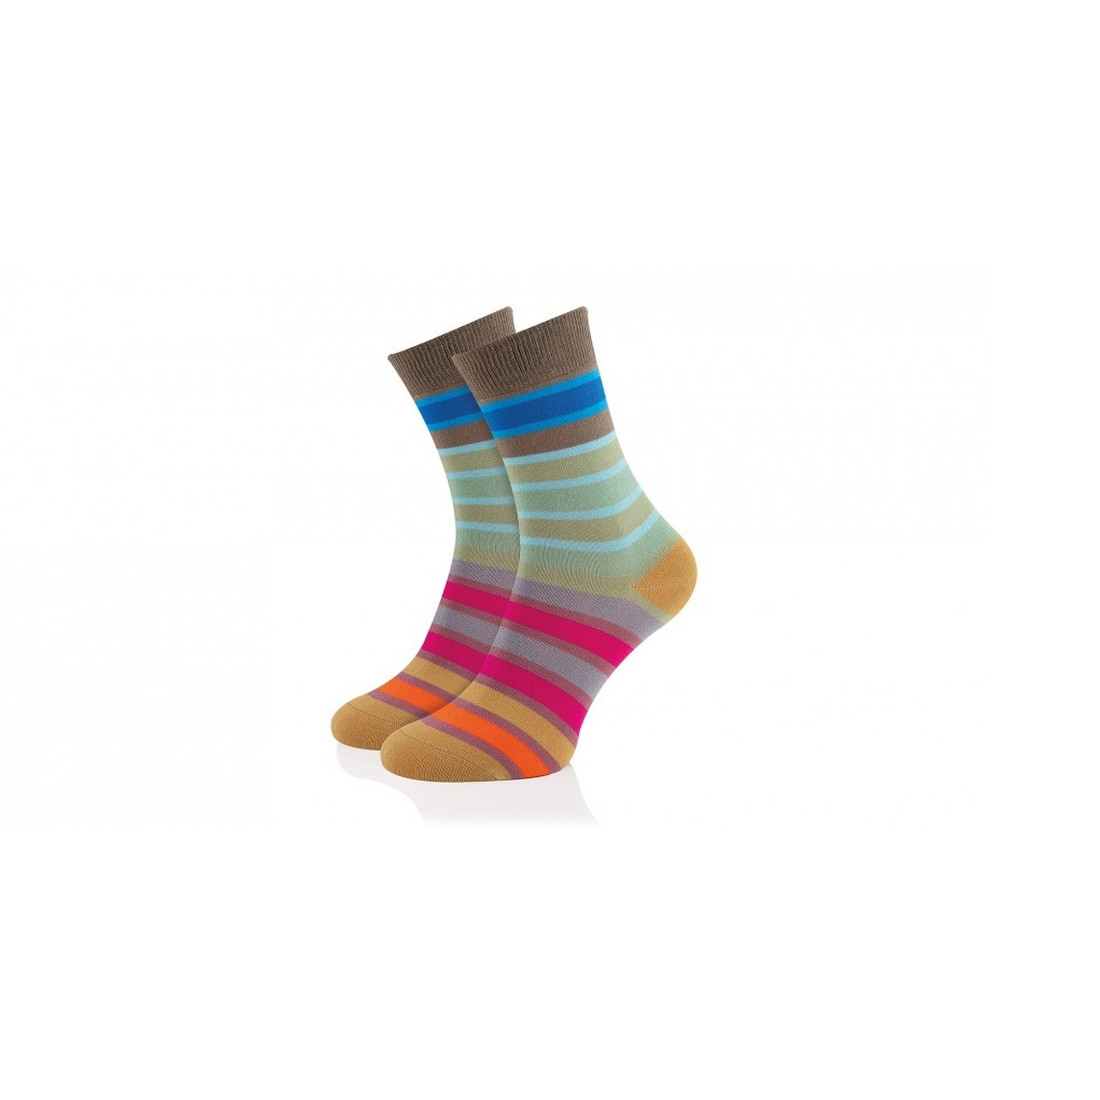 Damen Socken Modell 60, 36 - 41 by REMEMBER